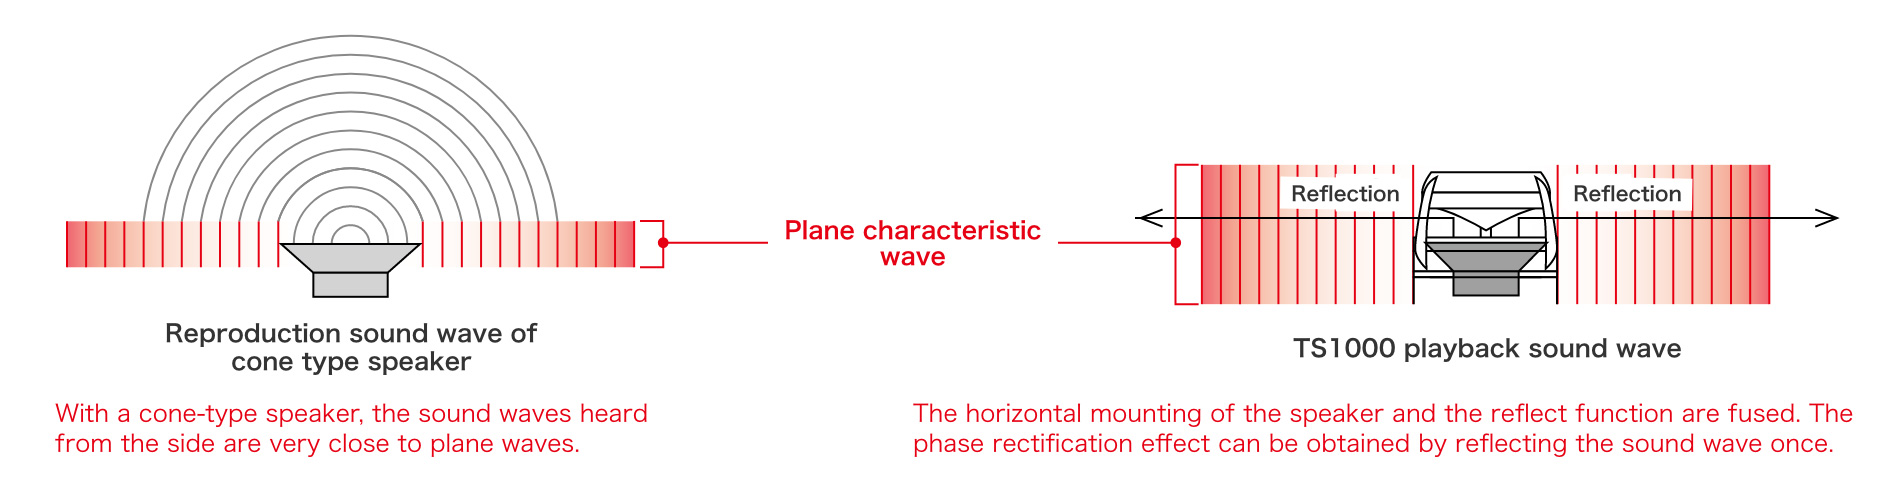 The shape that I make them hear plane characteristic wave efficiently